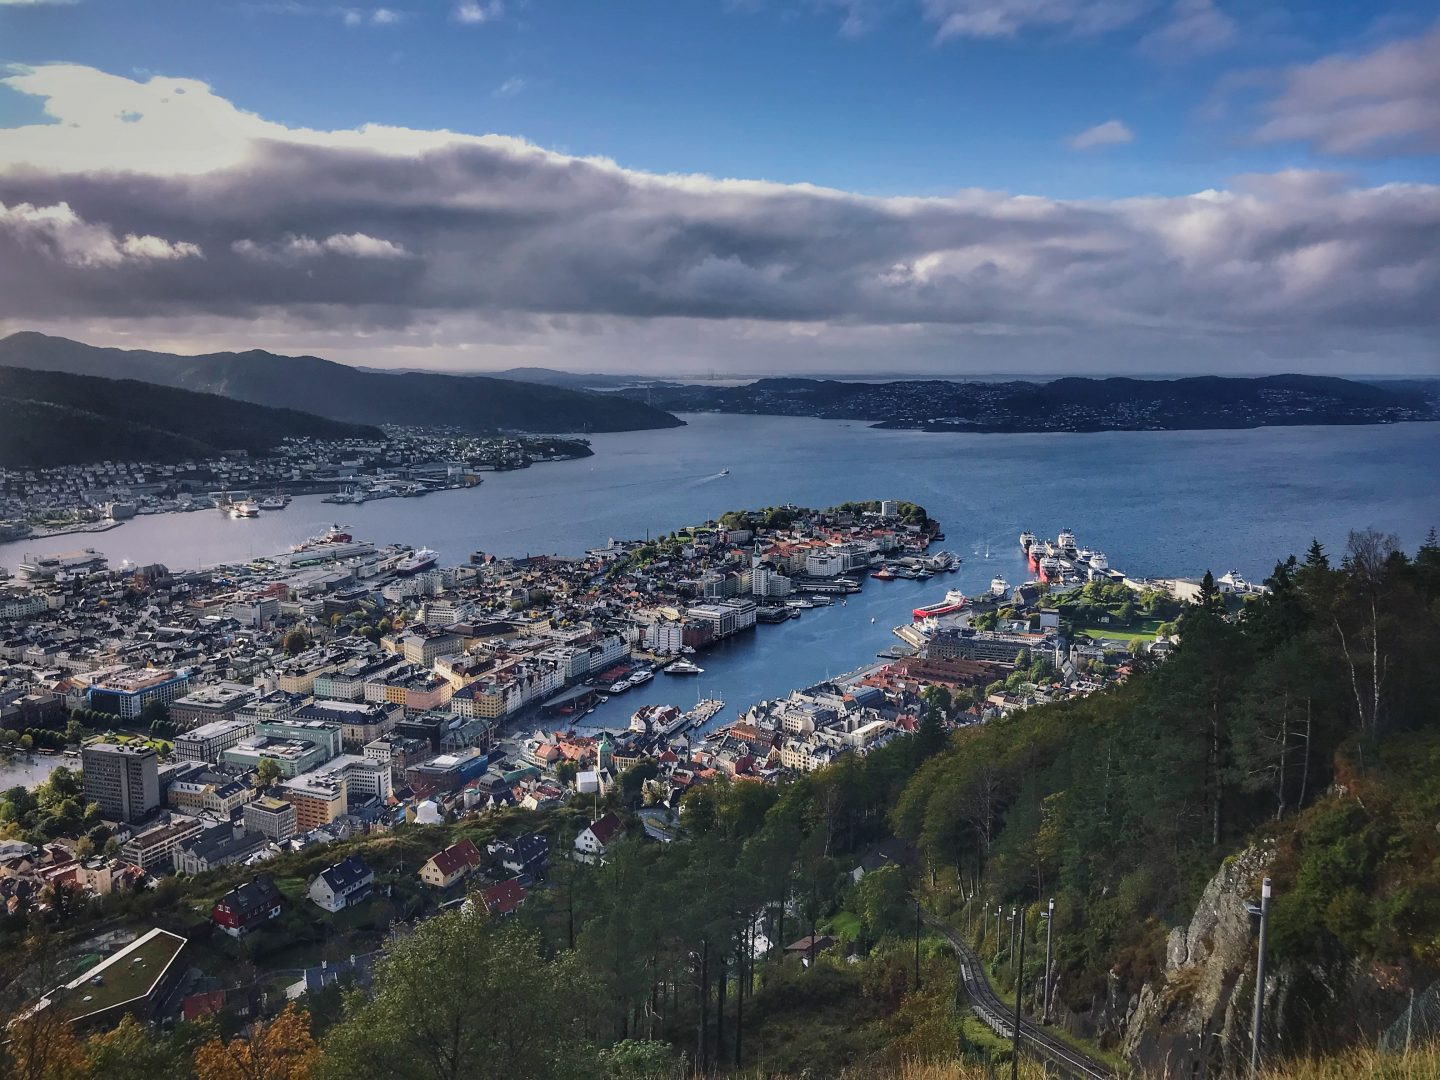 Bergen, Norway – 4 Day Travel Guide